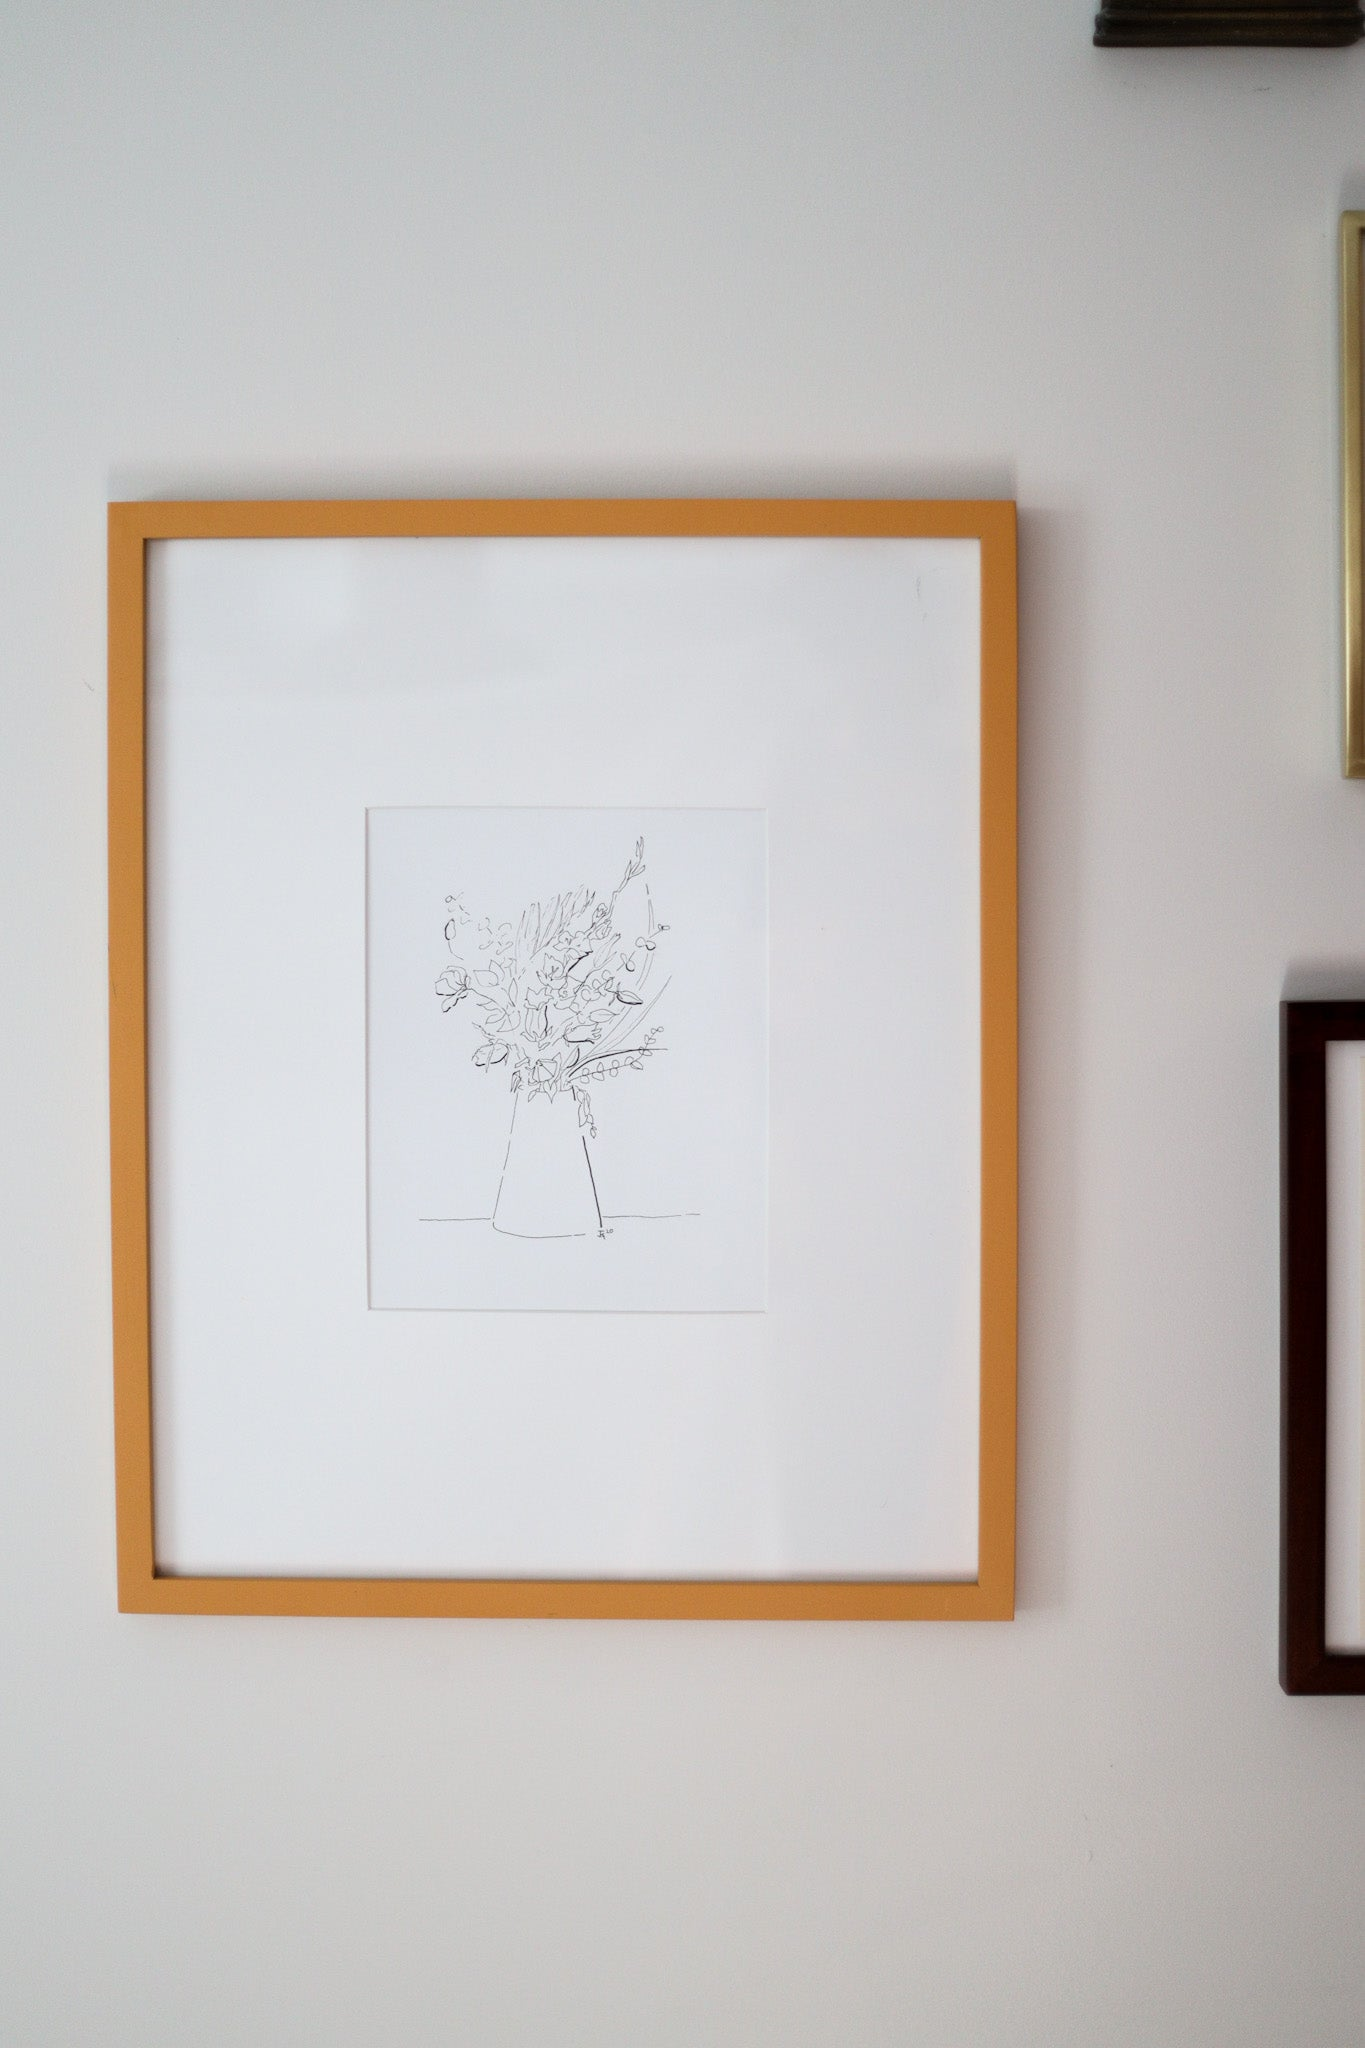 Orange framed floral sketch hanging on the wall